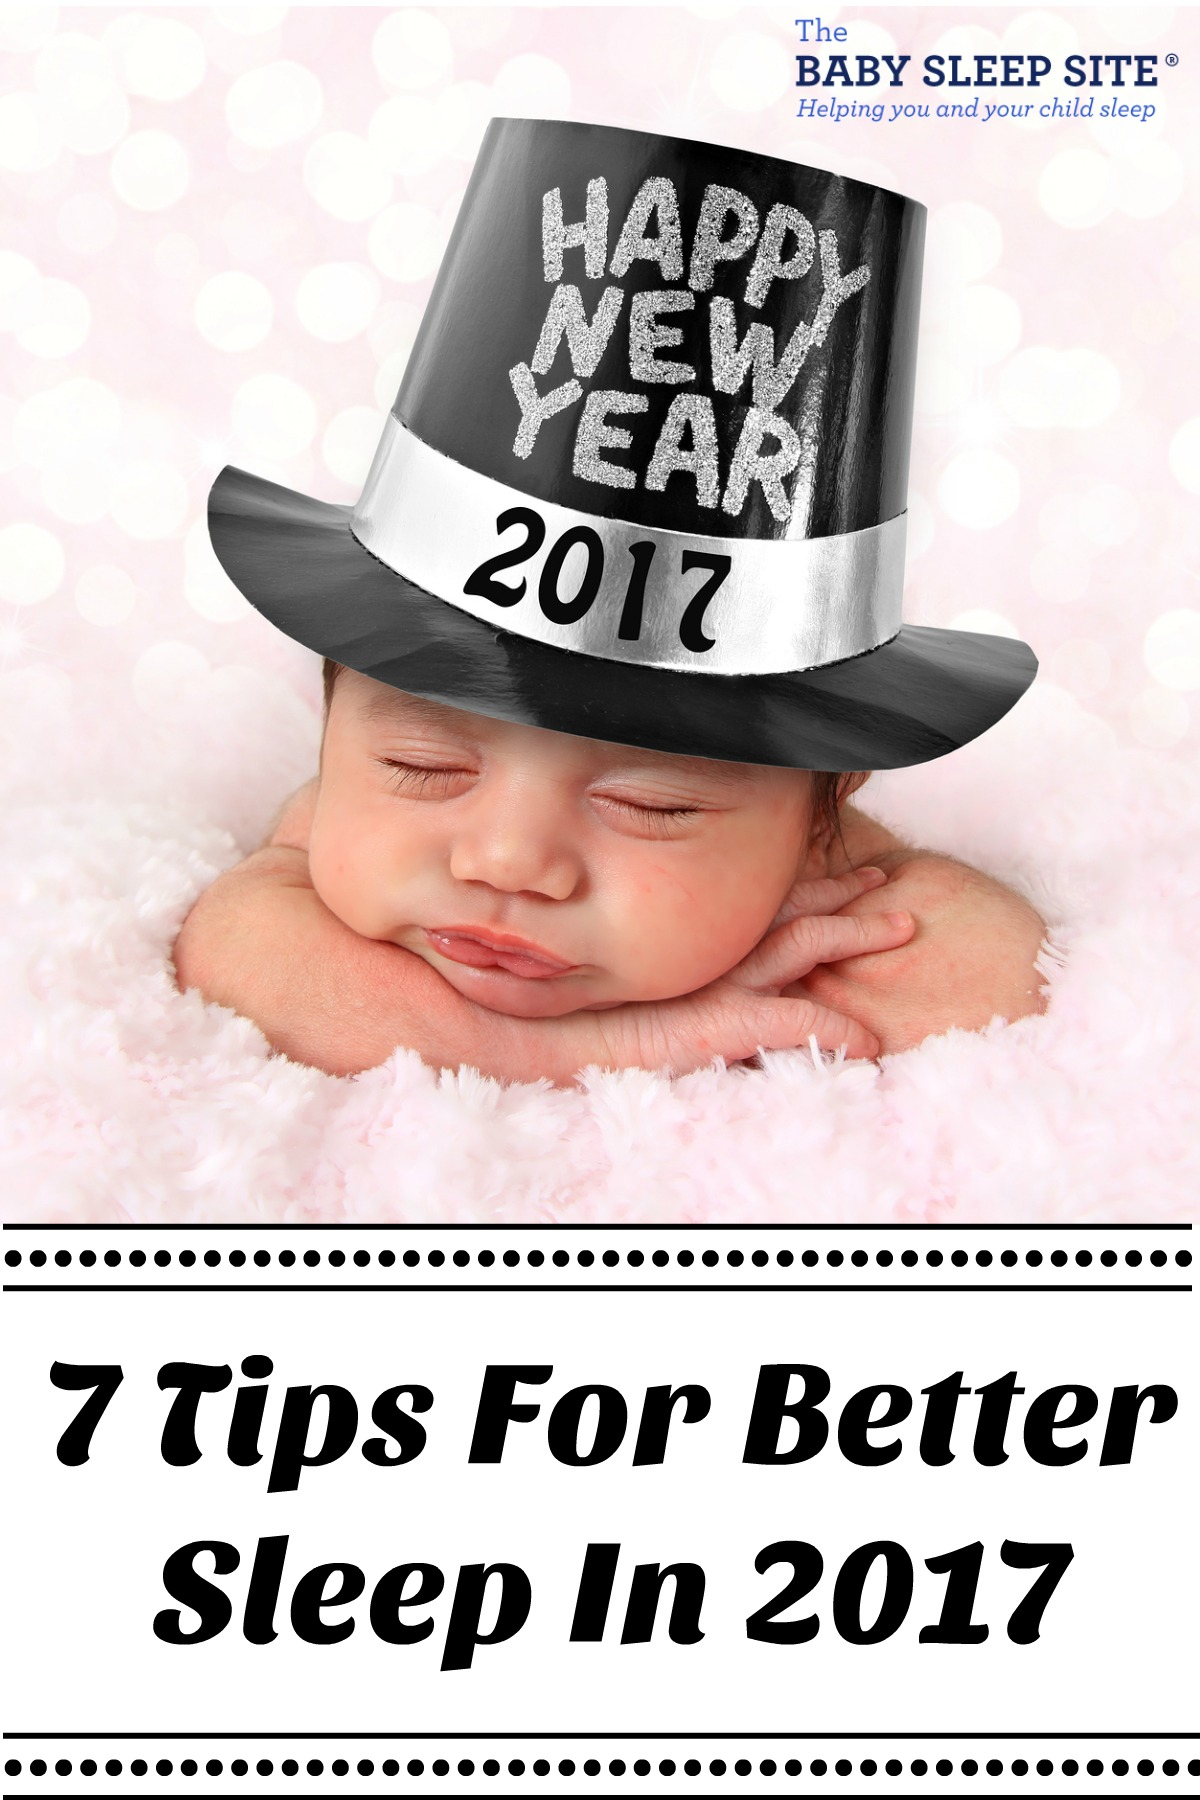 7 Tips For Better Sleep In 2017